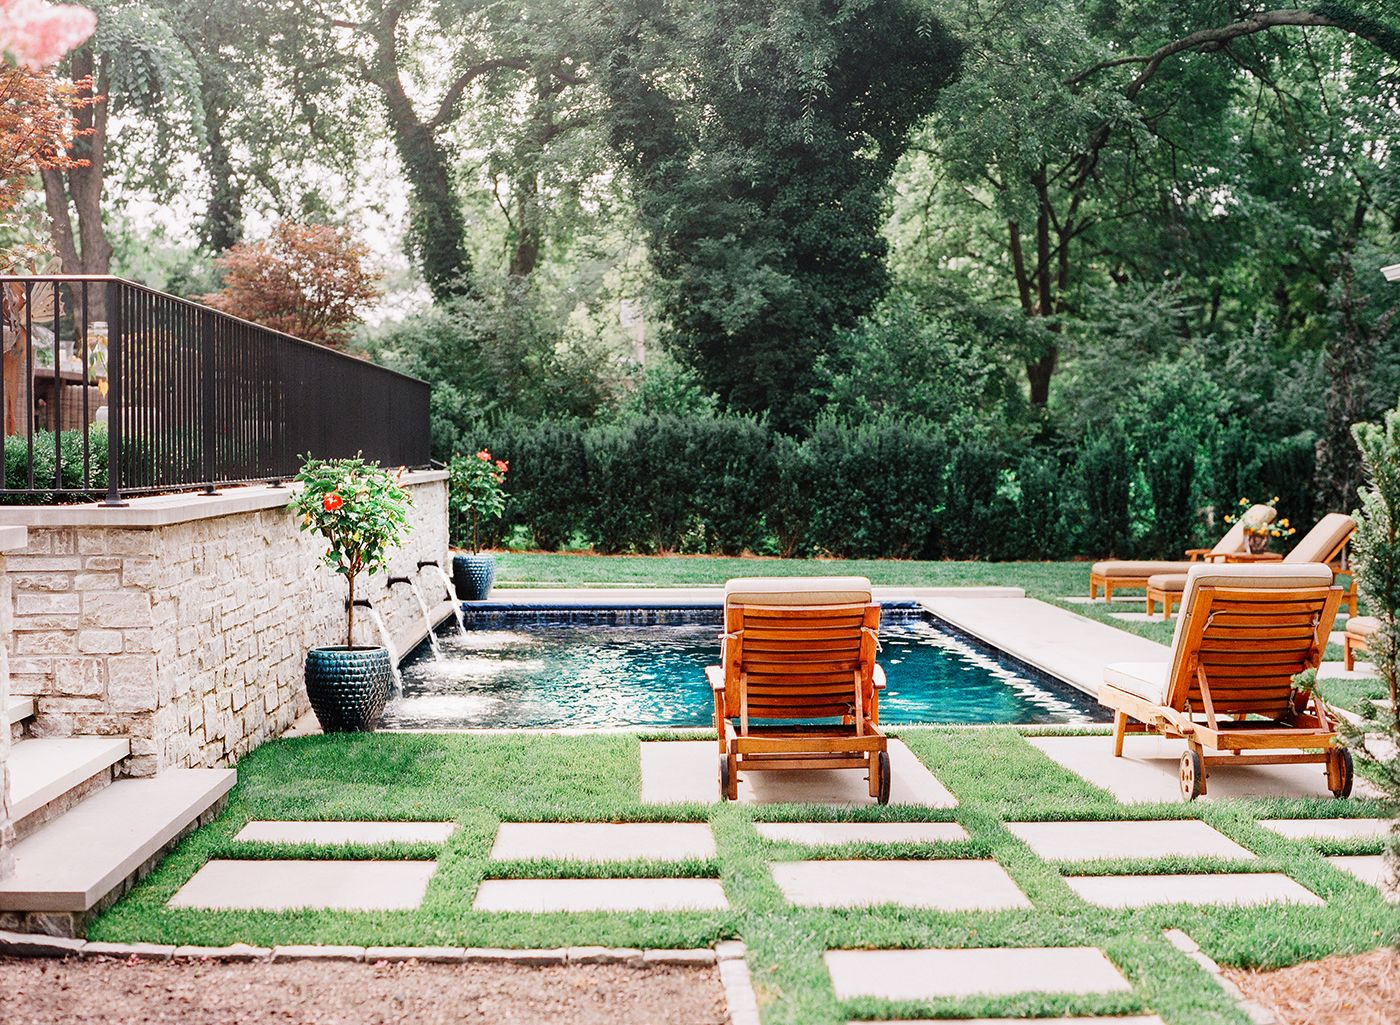 Landscape architecture by anne daigh landscaping with for Garden design nashville tn